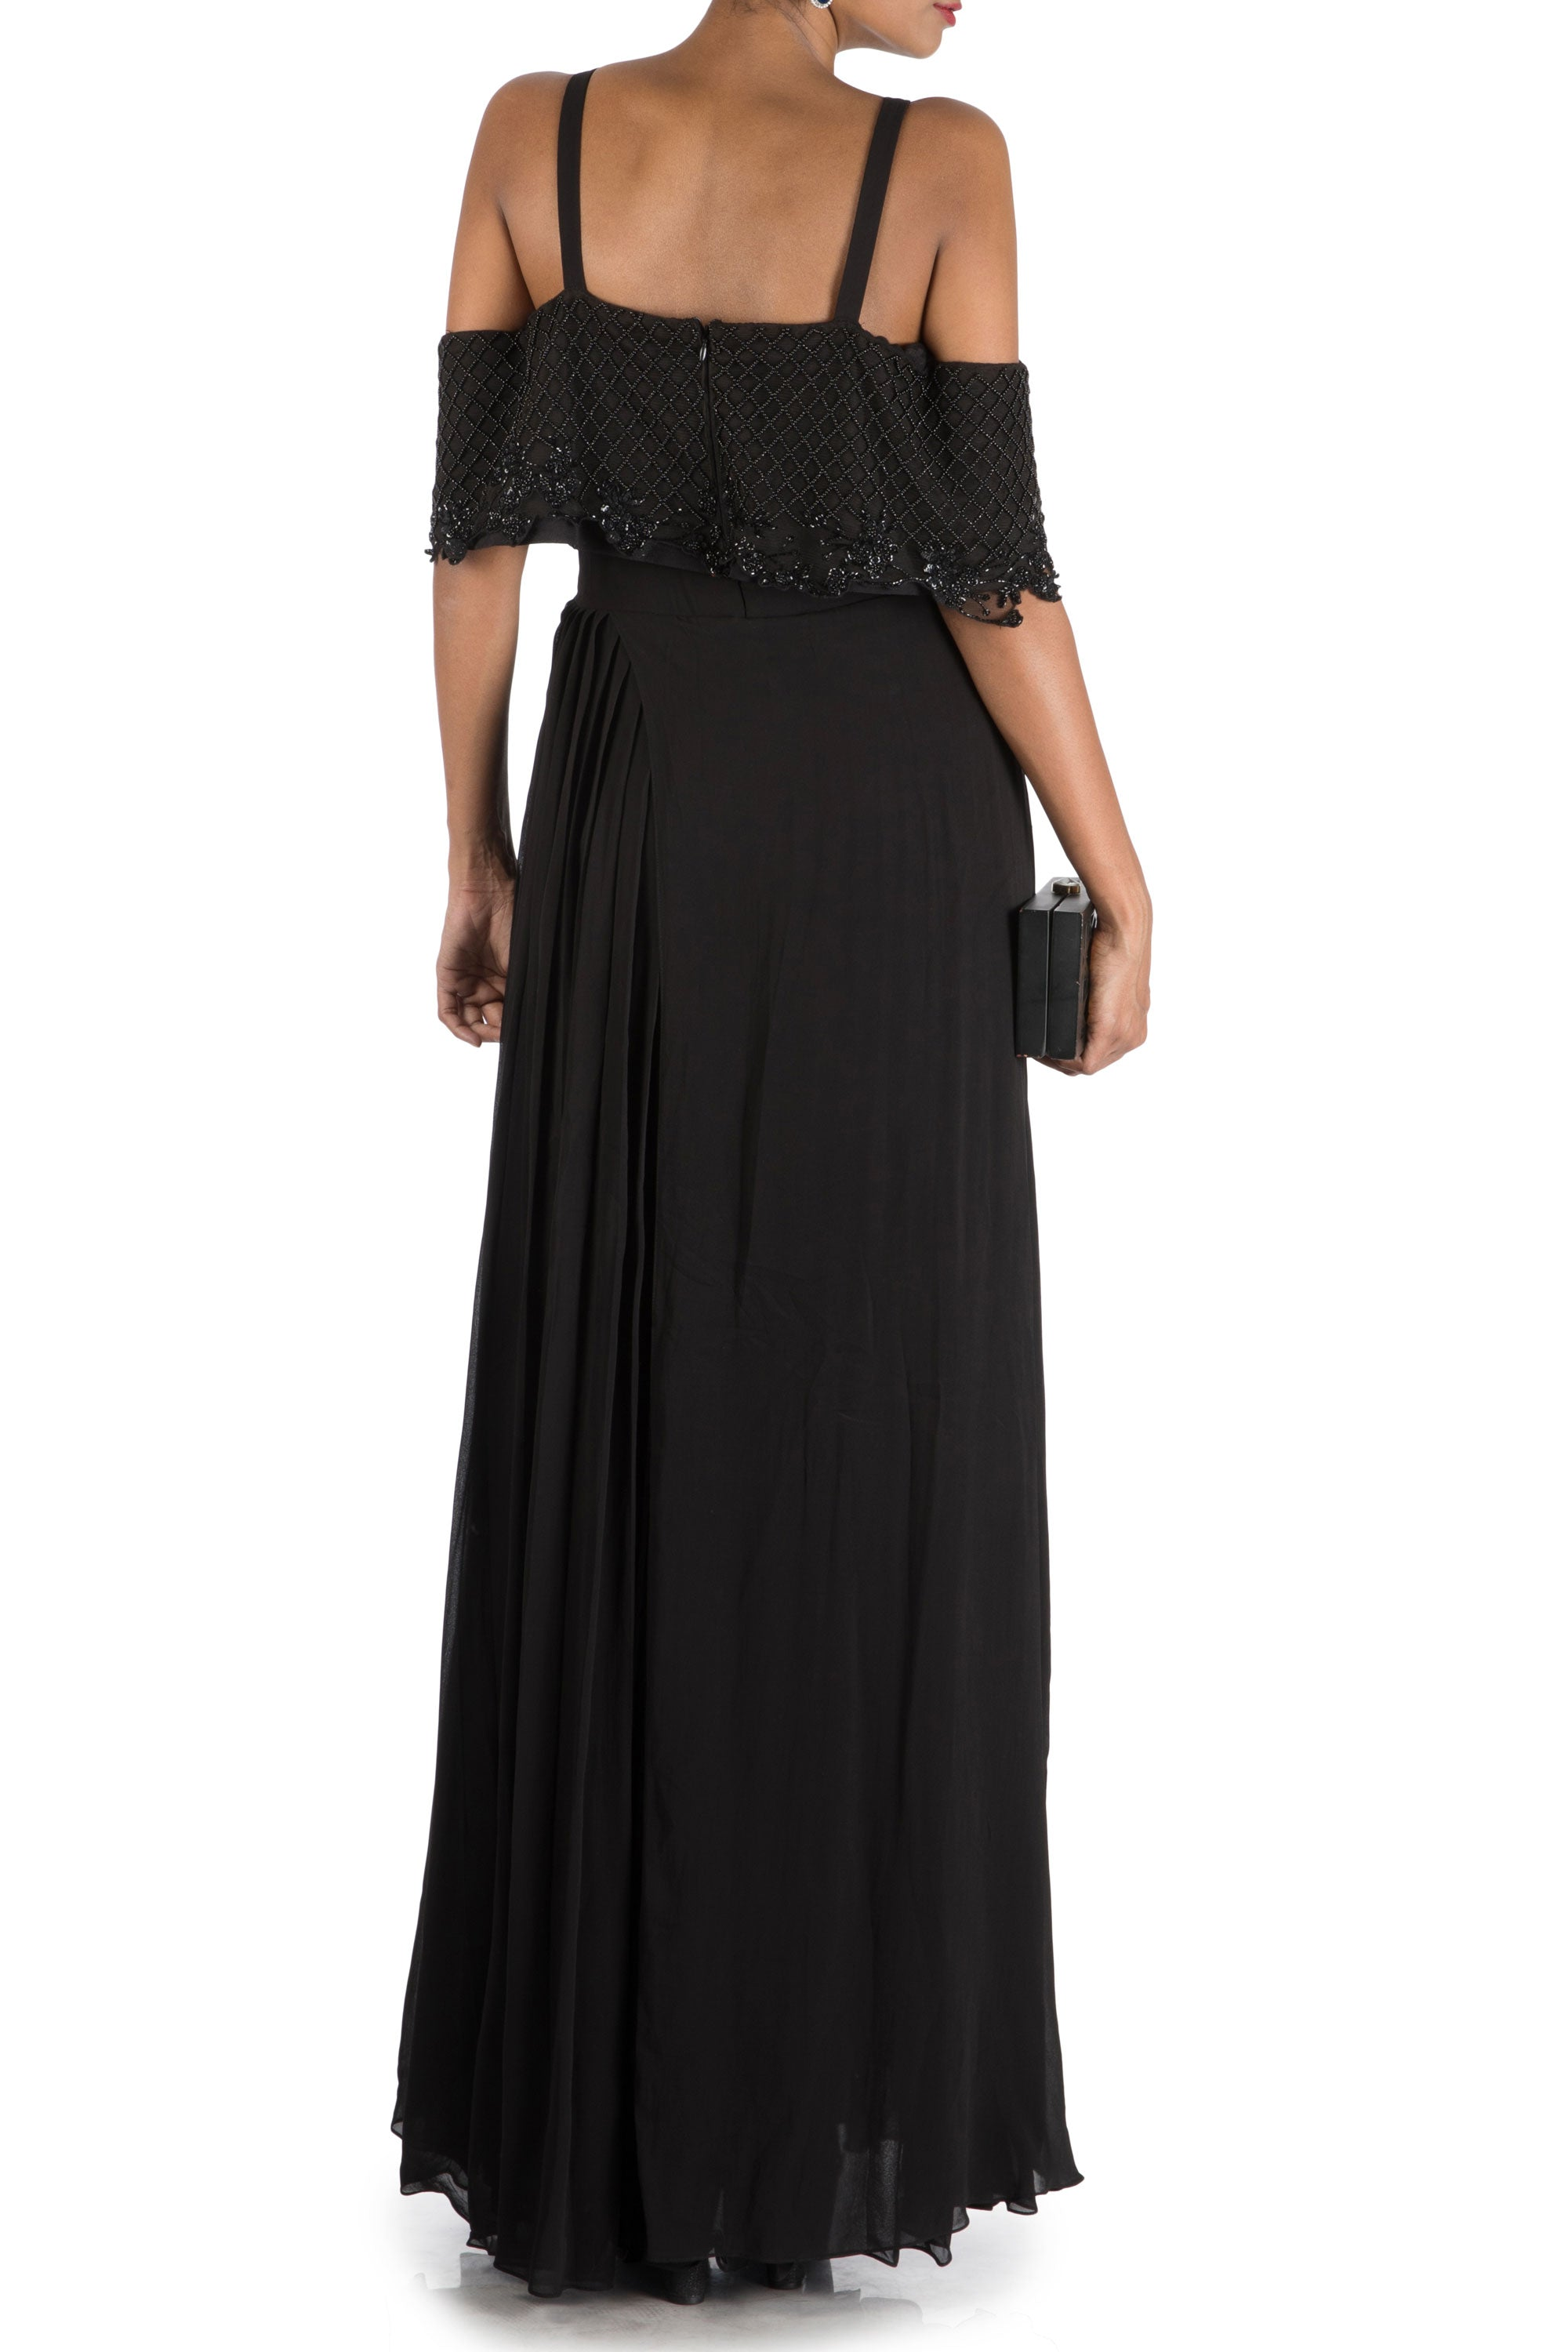 Charcoal Black Layered Jumpsuit With Off Shoulder Cape Back